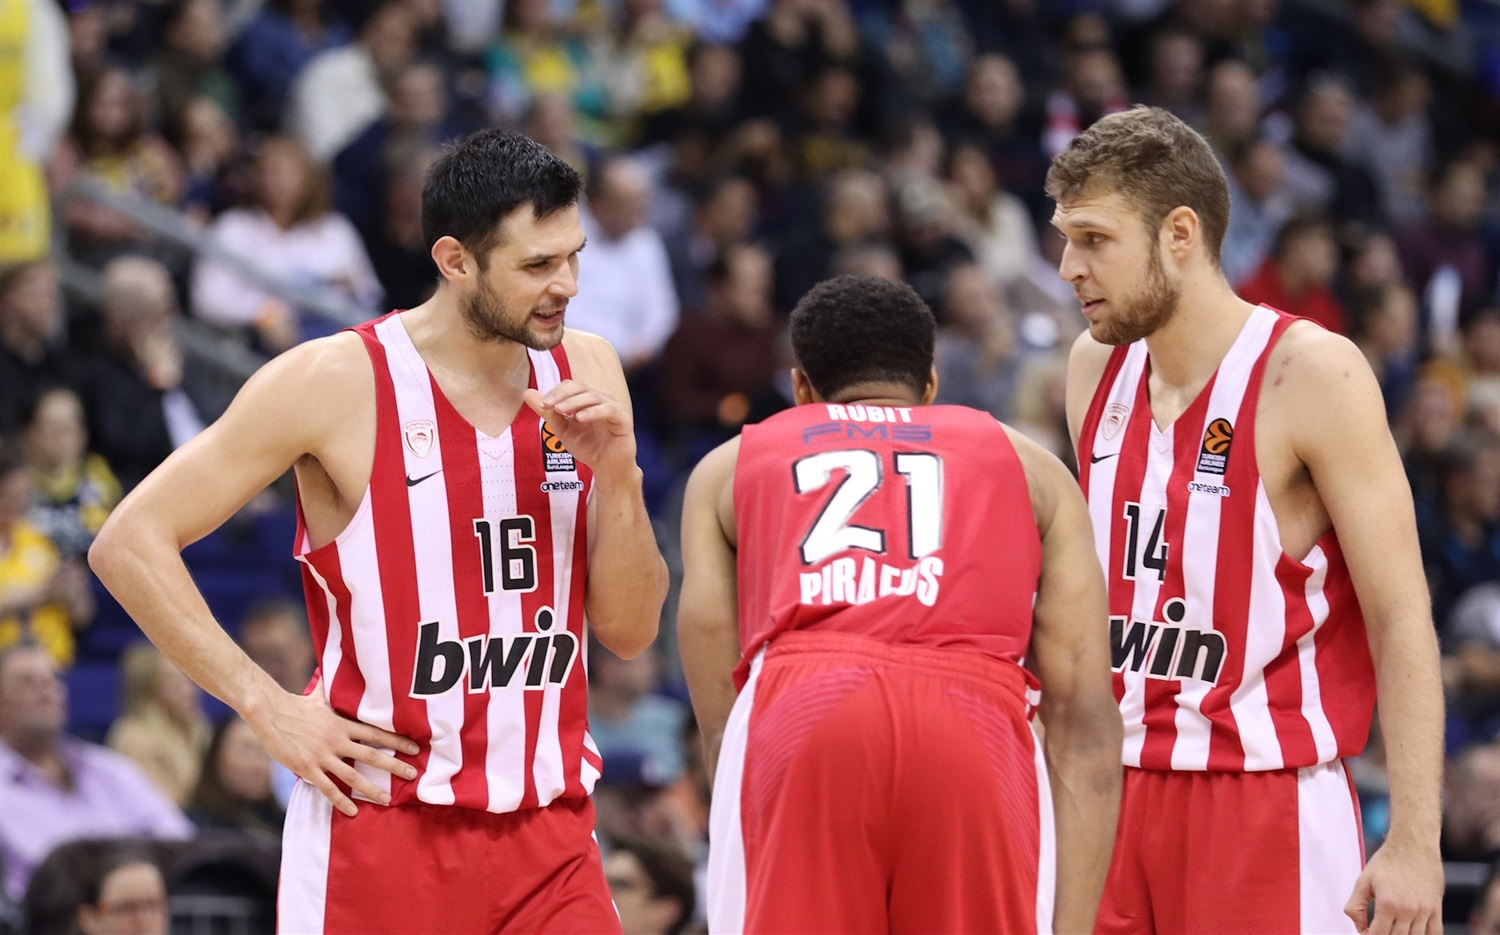 Players Olympiacos Piraeus - EB19